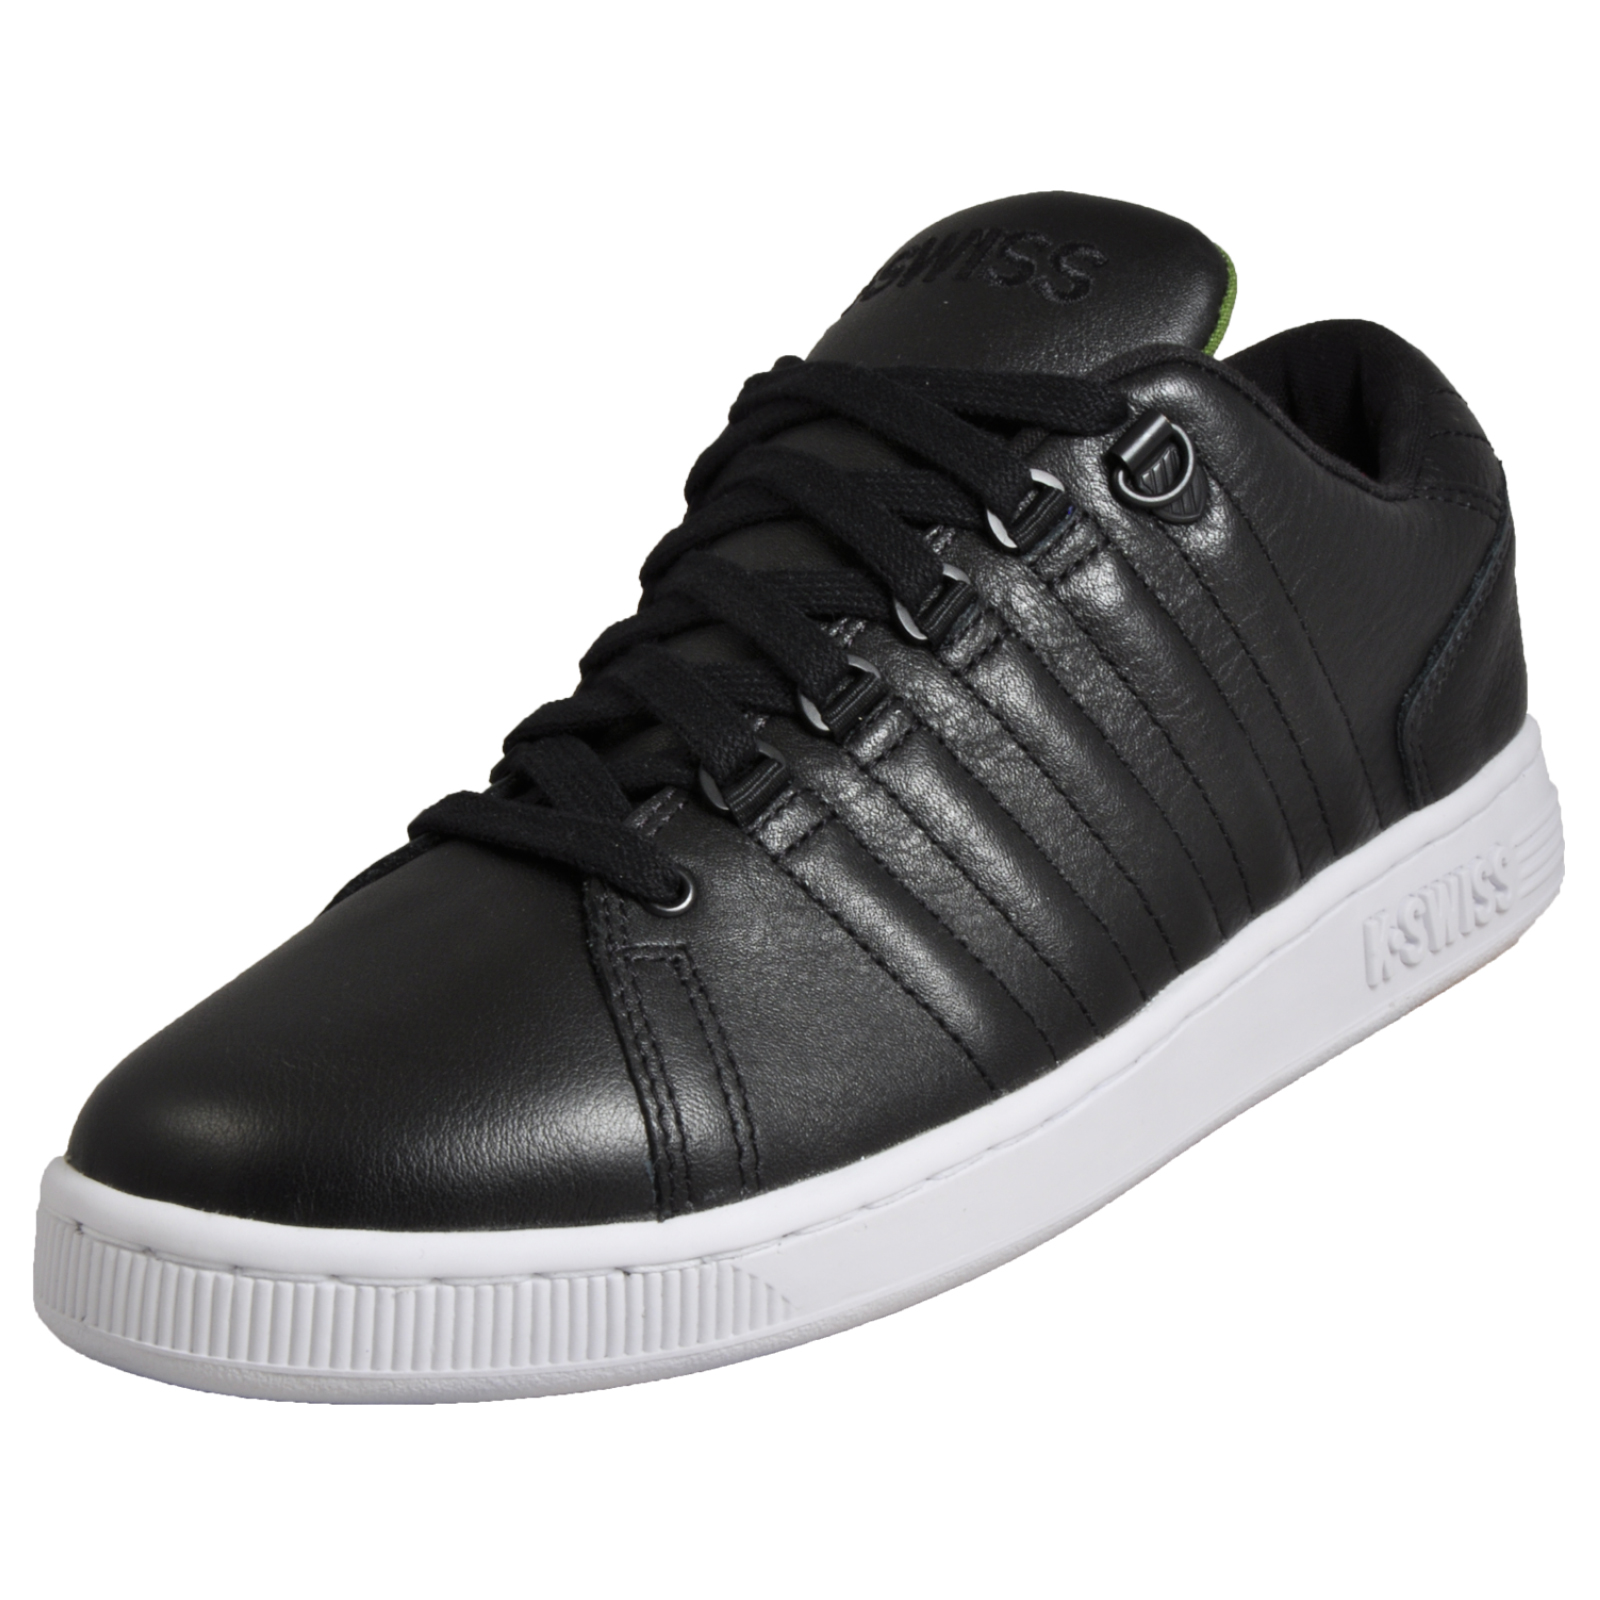 7fa01a9a7d1 Details about K Swiss Lozan III TT Tongue Twister Men s Classic Casual  Leather Trainers Black